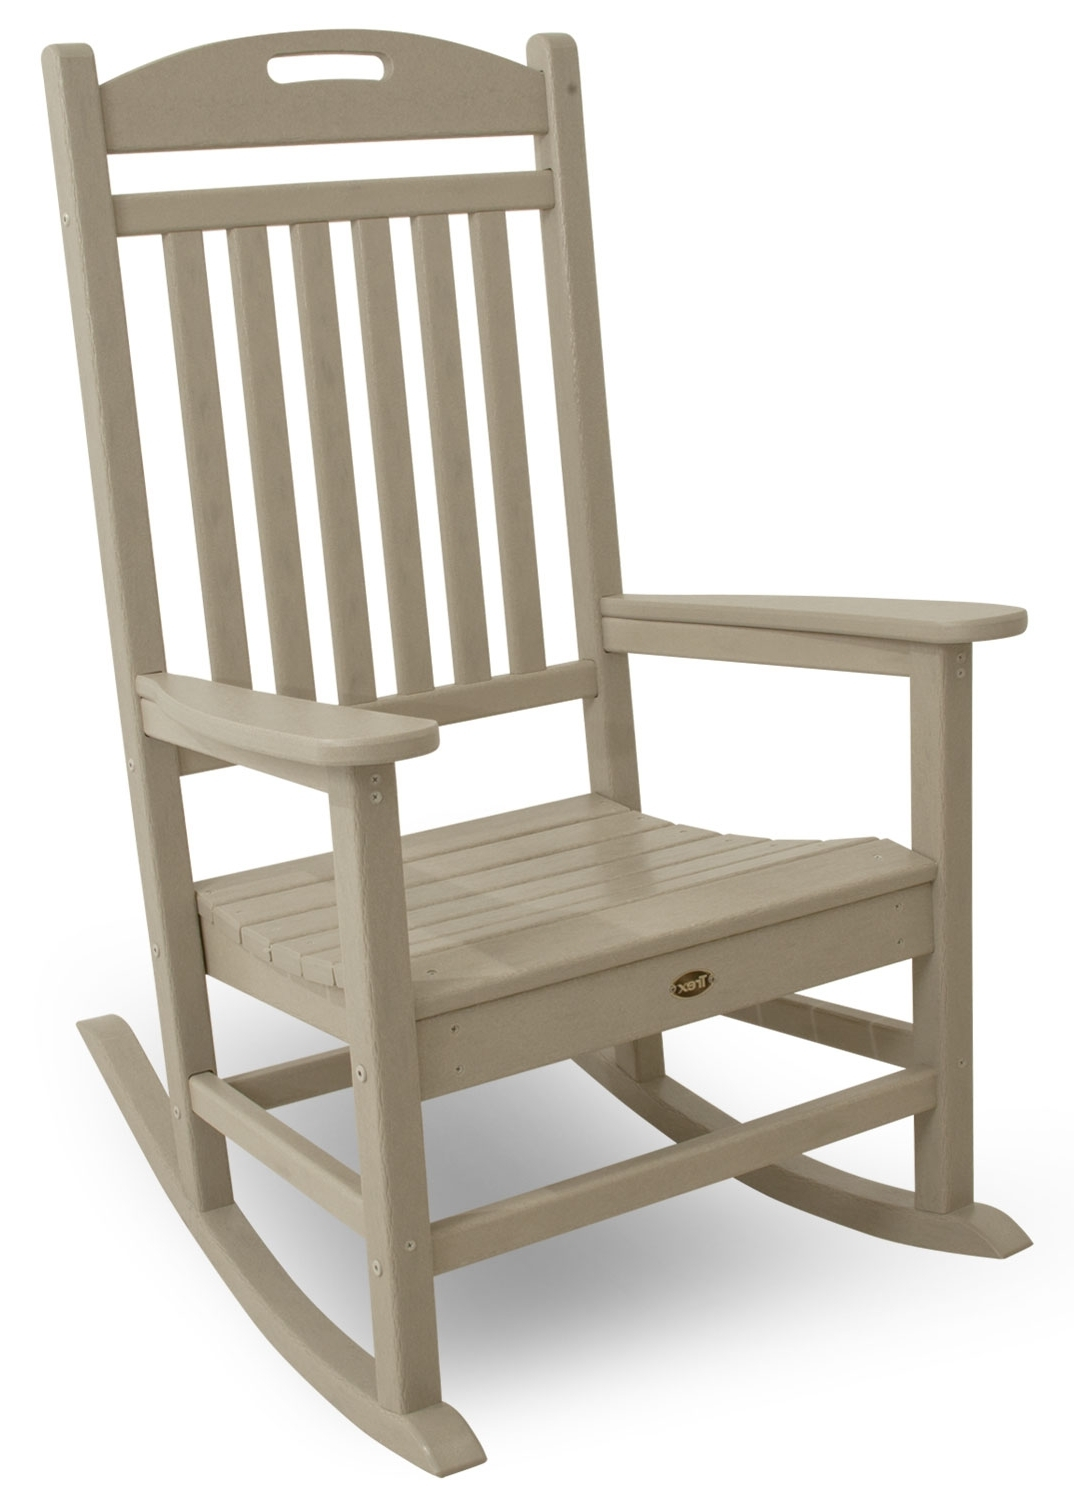 Most Popular Old Fashioned Rocking Chairs Intended For Yacht Club Rocking Chair (View 6 of 20)